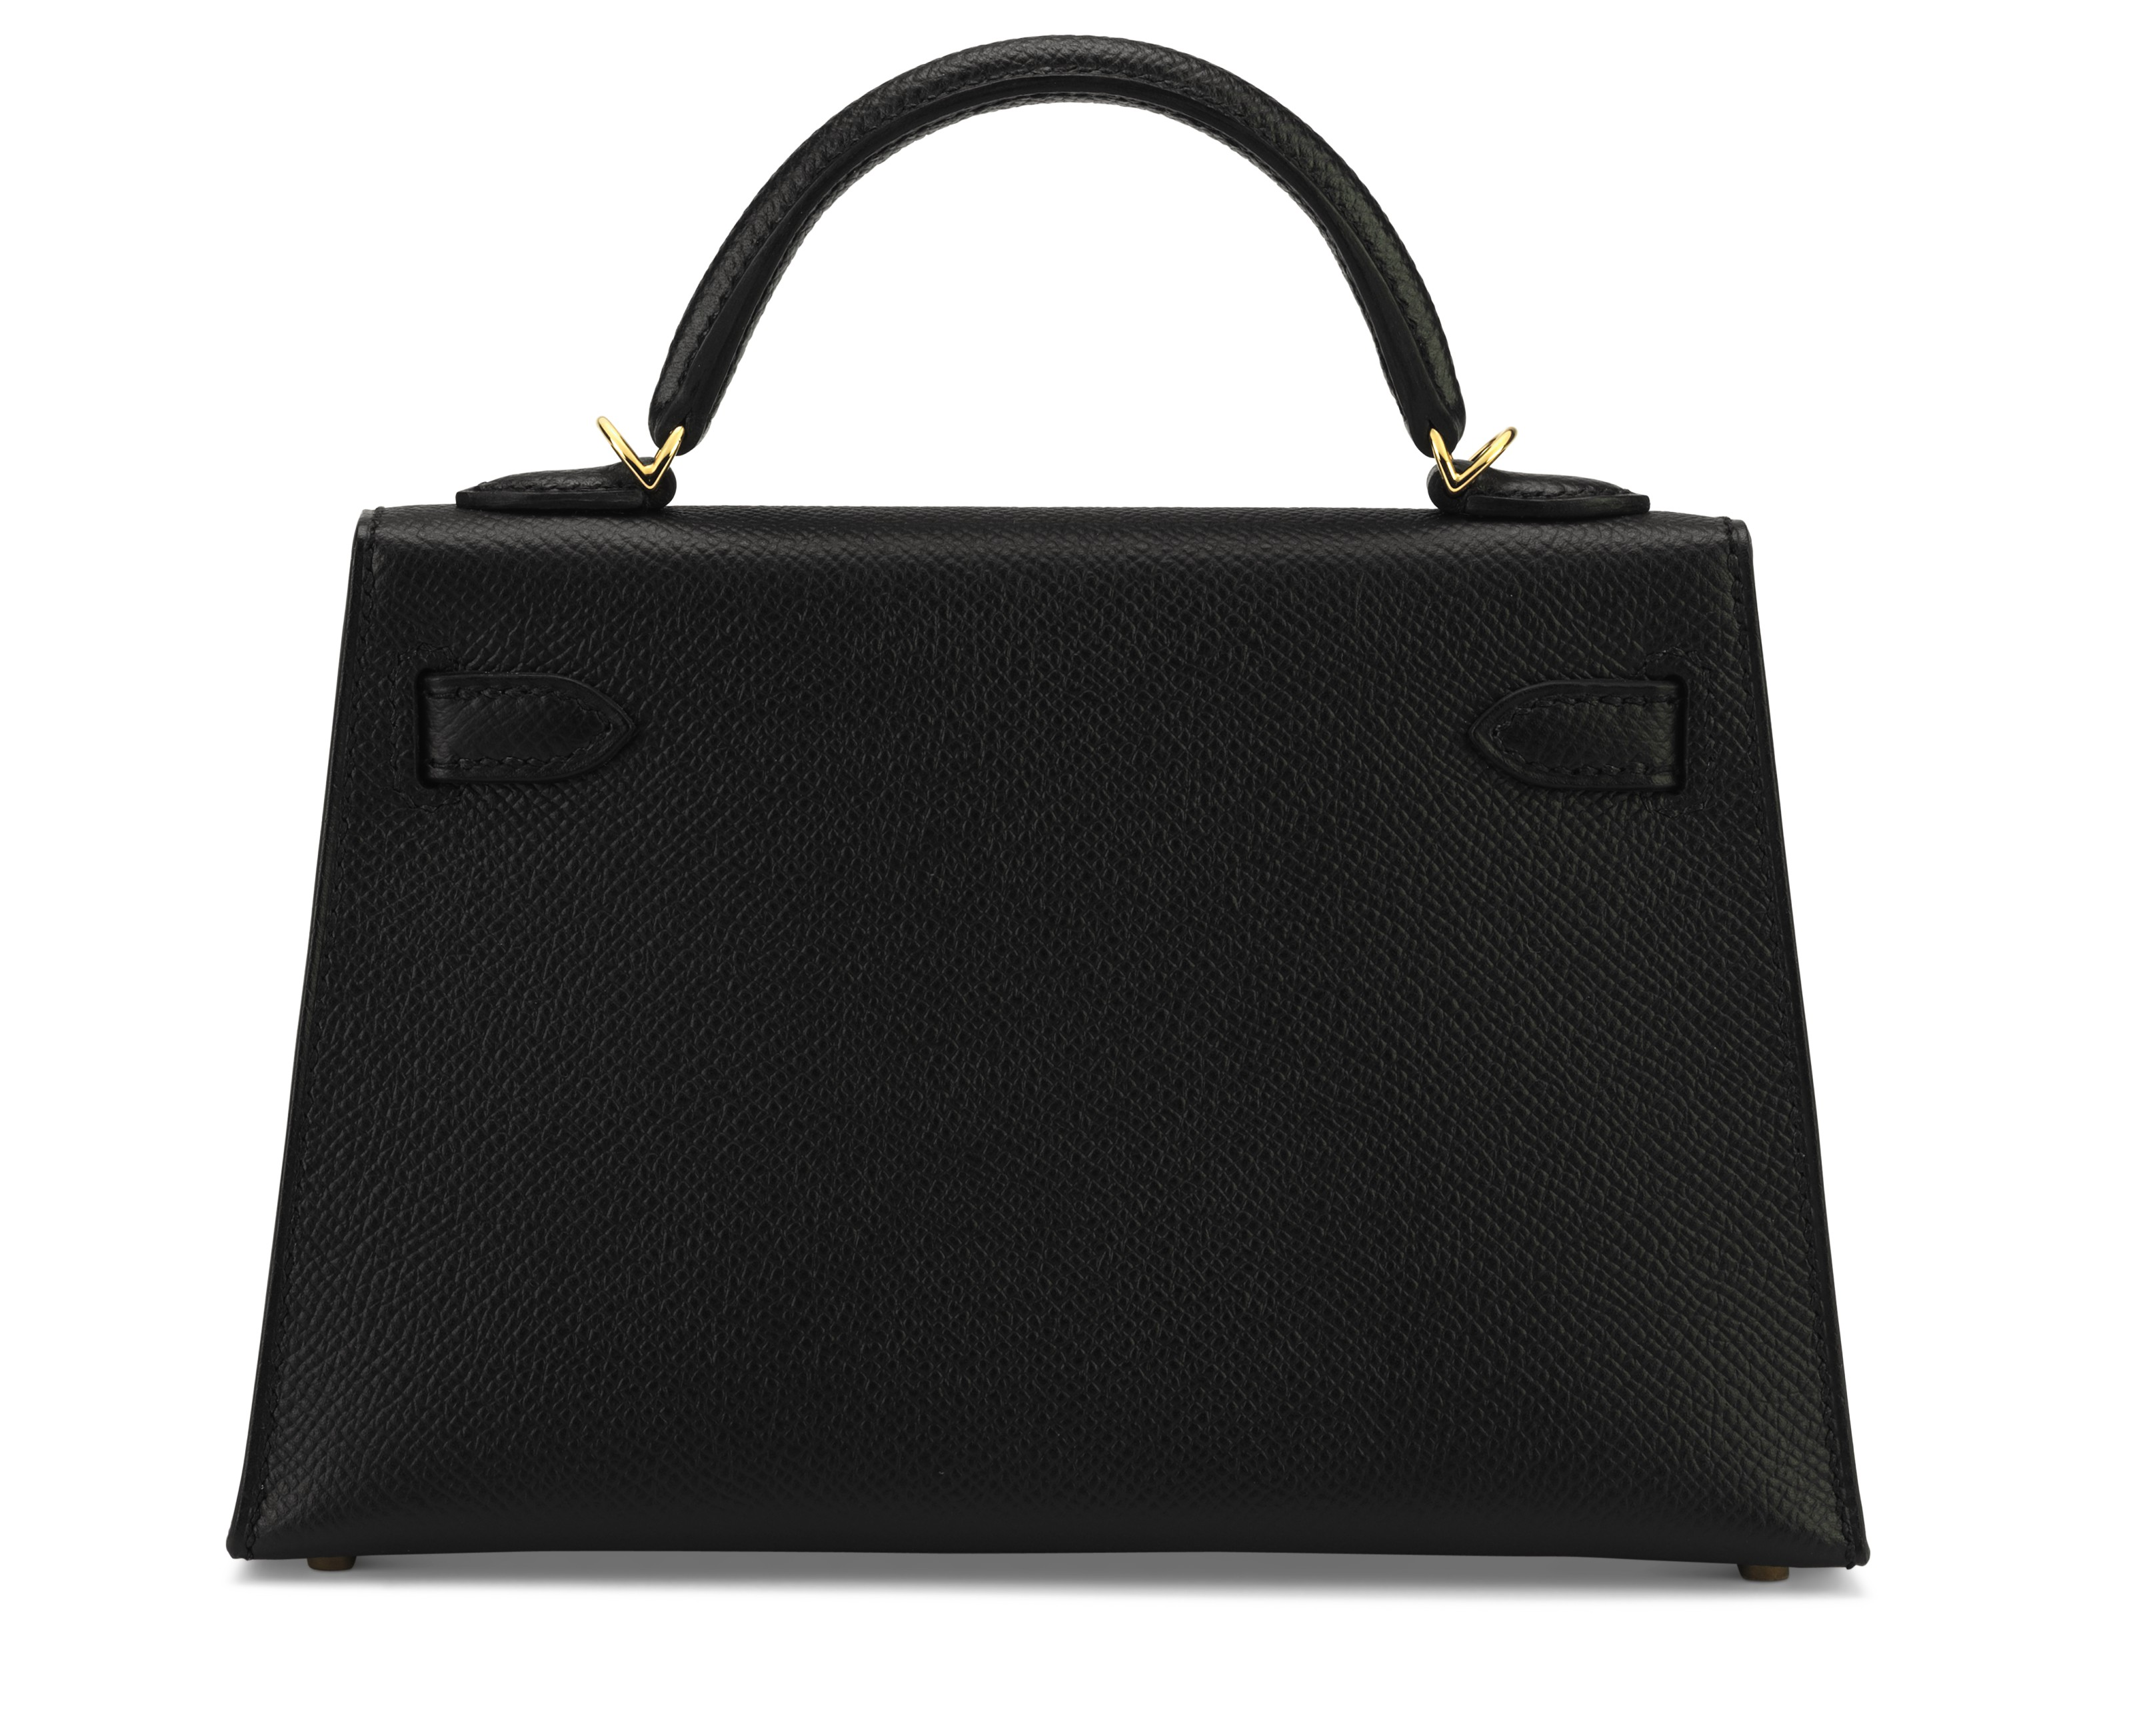 A BLACK EPSOM LEATHER SELLIER KELLY 20 II WITH GOLD HARDWARE